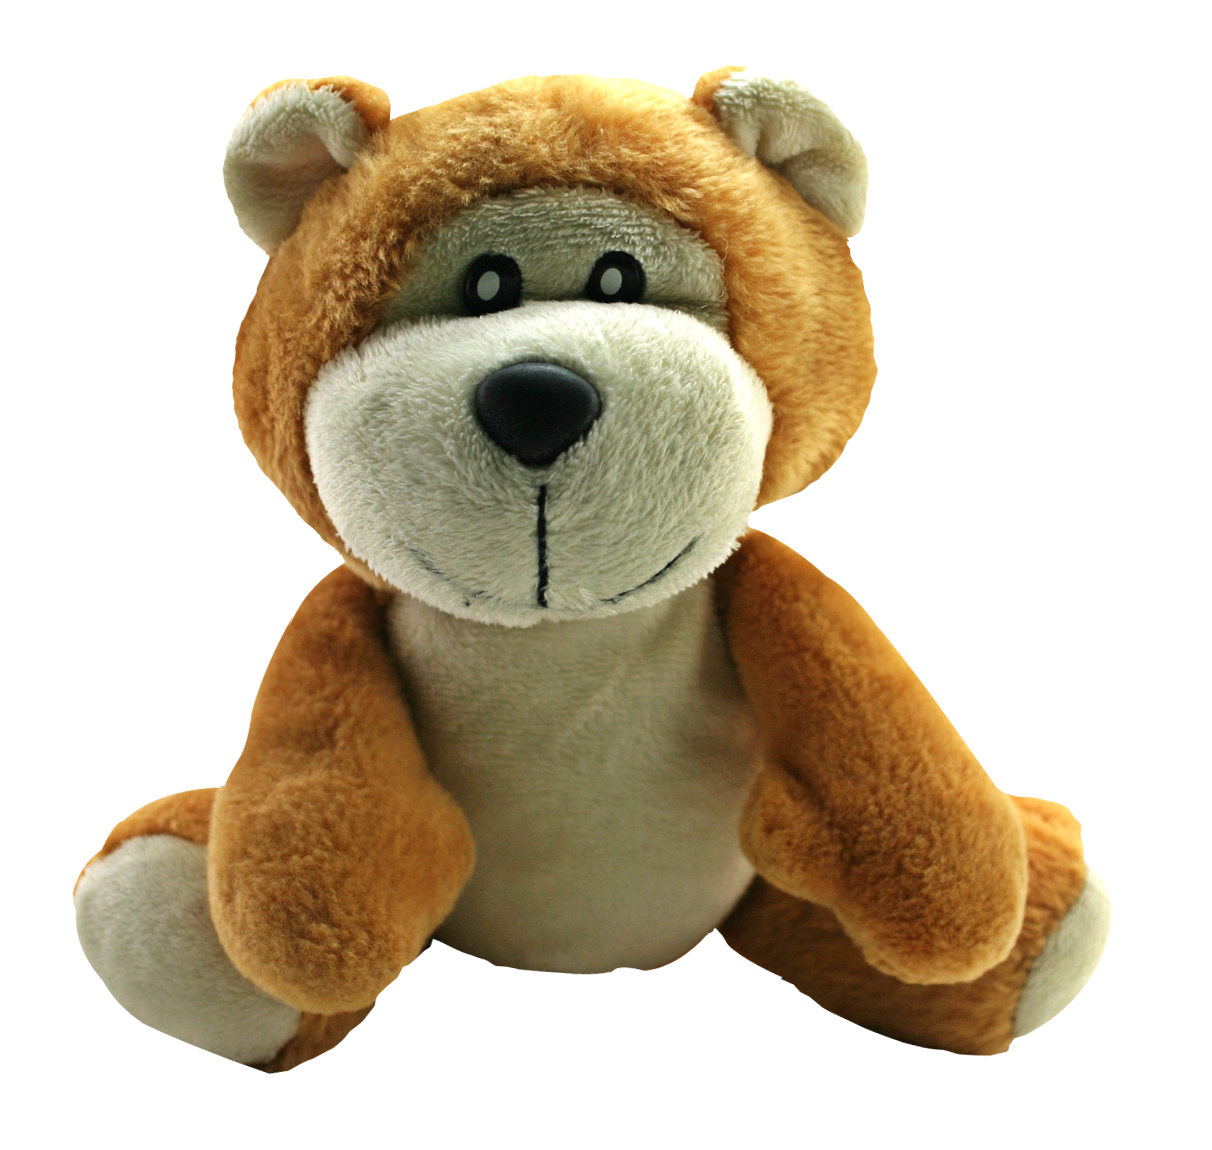 classic teddy bear png image pngpix #15639